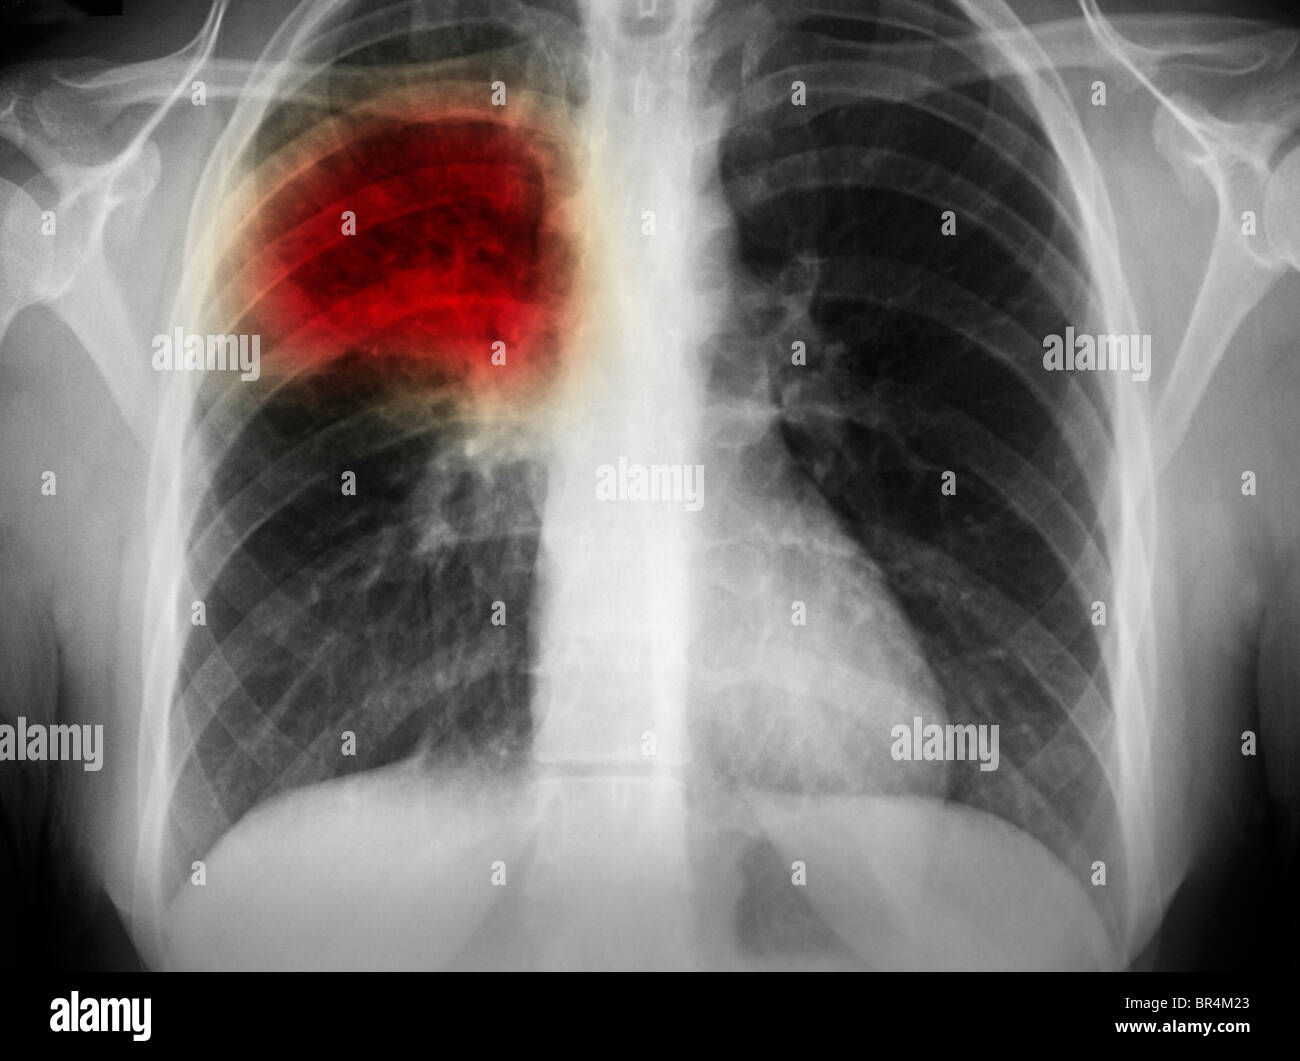 chest x-ray showing pneumonia in the right upper lobe of the lung of a 17 year old woman - Stock Image